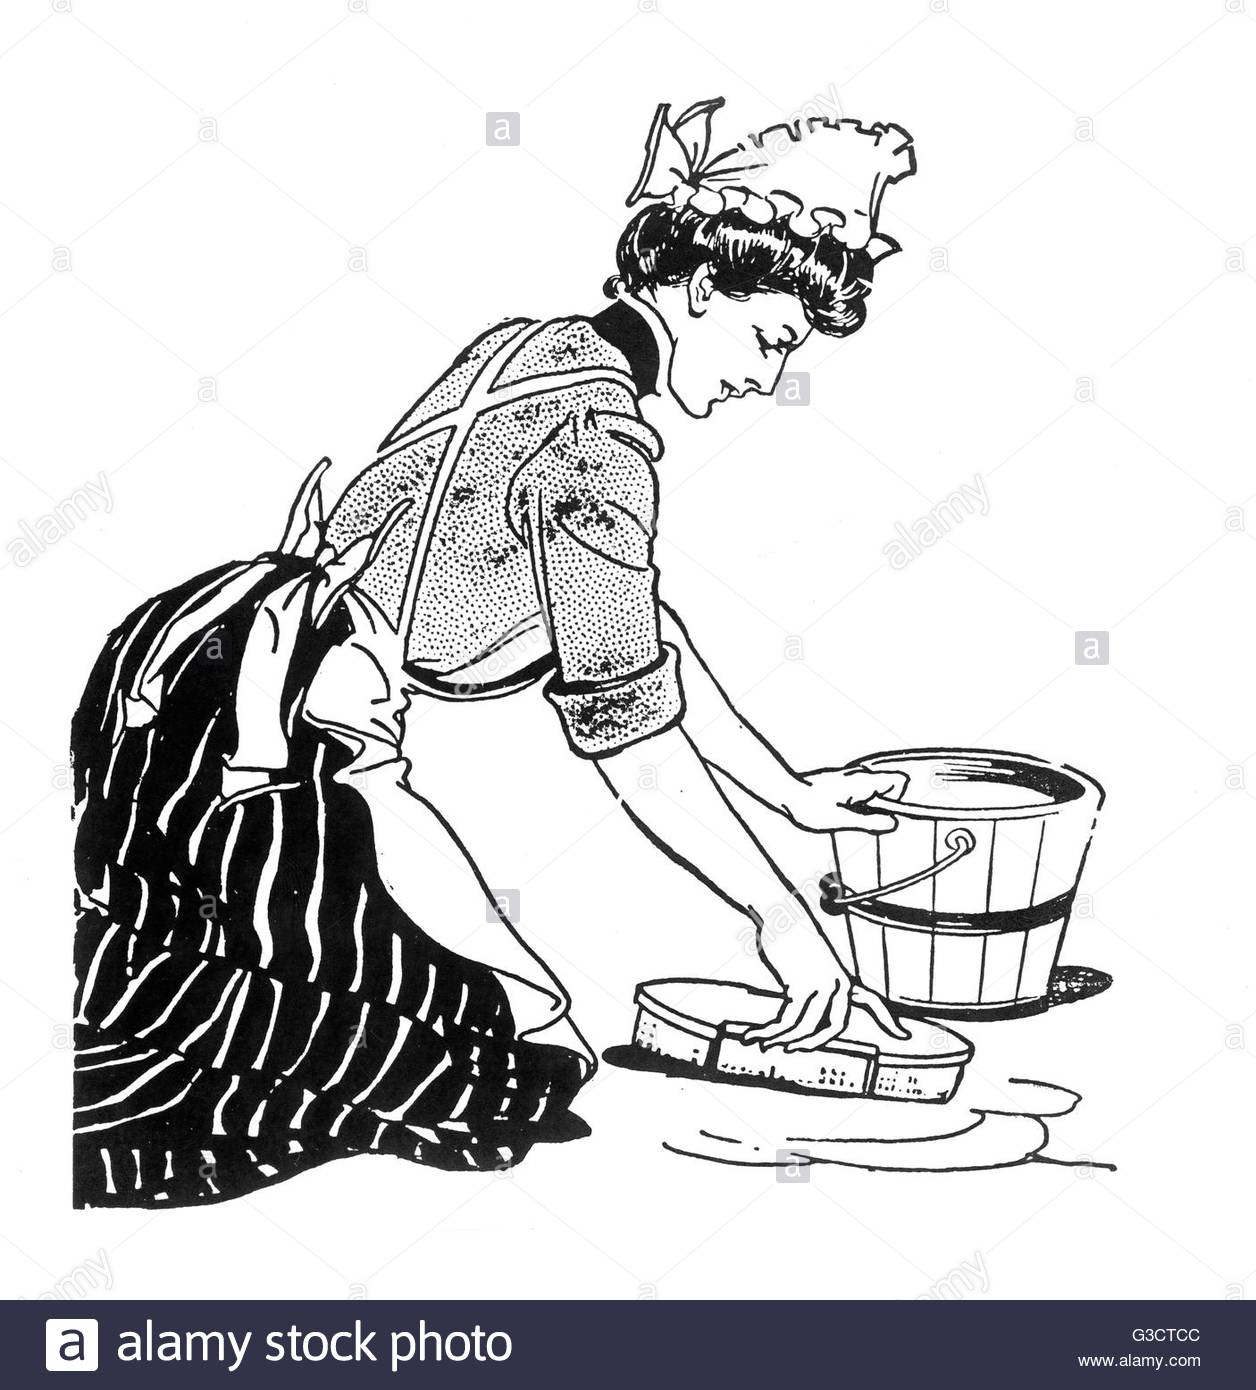 A Maid Kneels Down To Scrub The Floor. Date: 1901 Stock Photo.